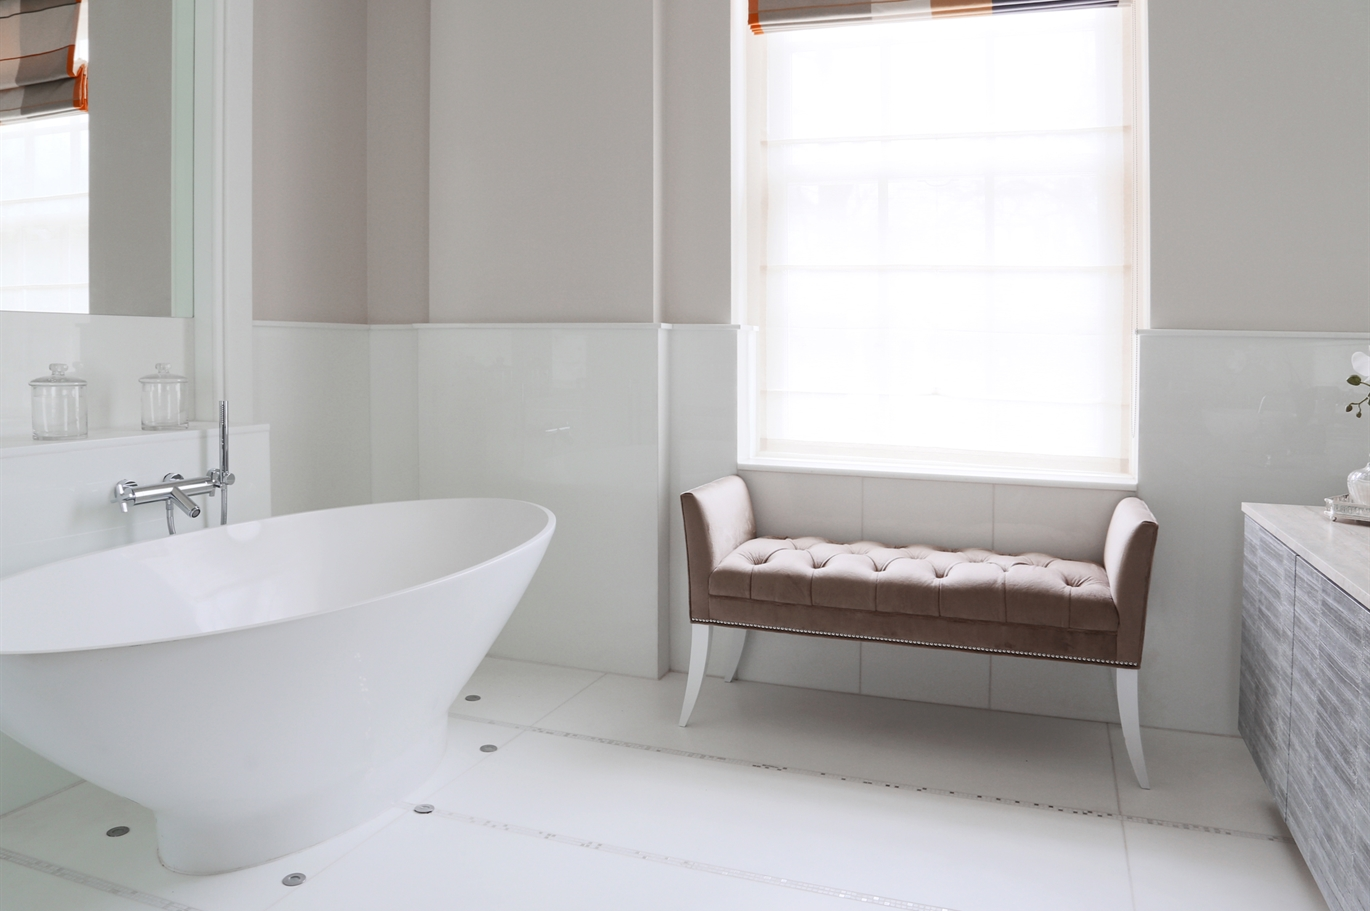 Luxury Bathroom Furniture - The Sofa & Chair Company